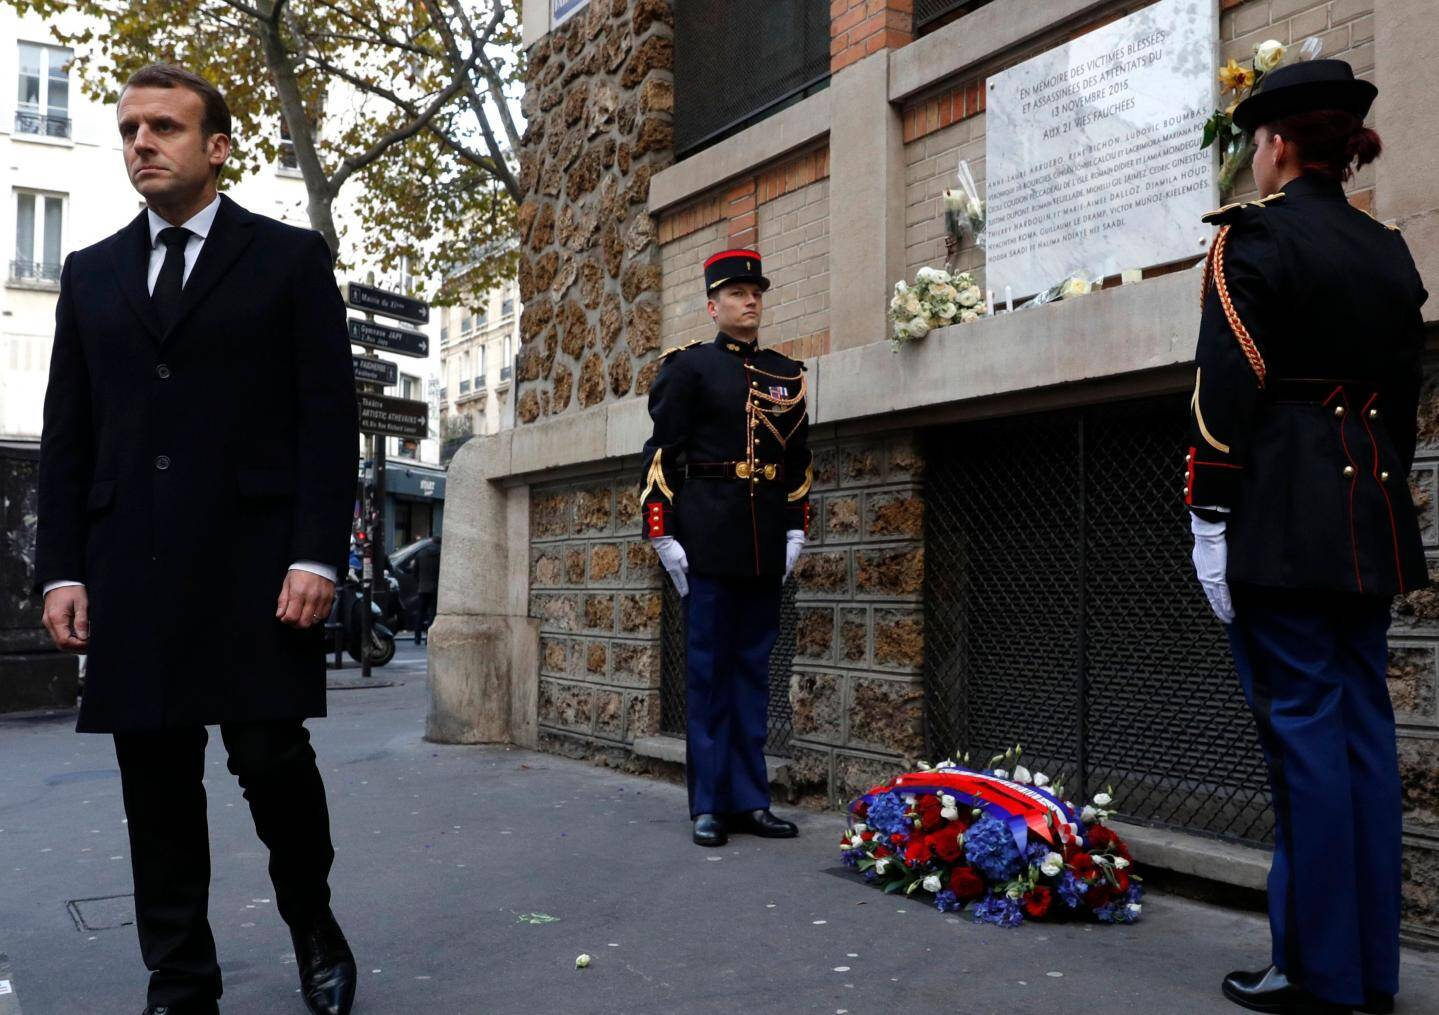 French President Emmanuel Macron (L) looks on after laying a wreath of flowers in front of a commemorative plaque at